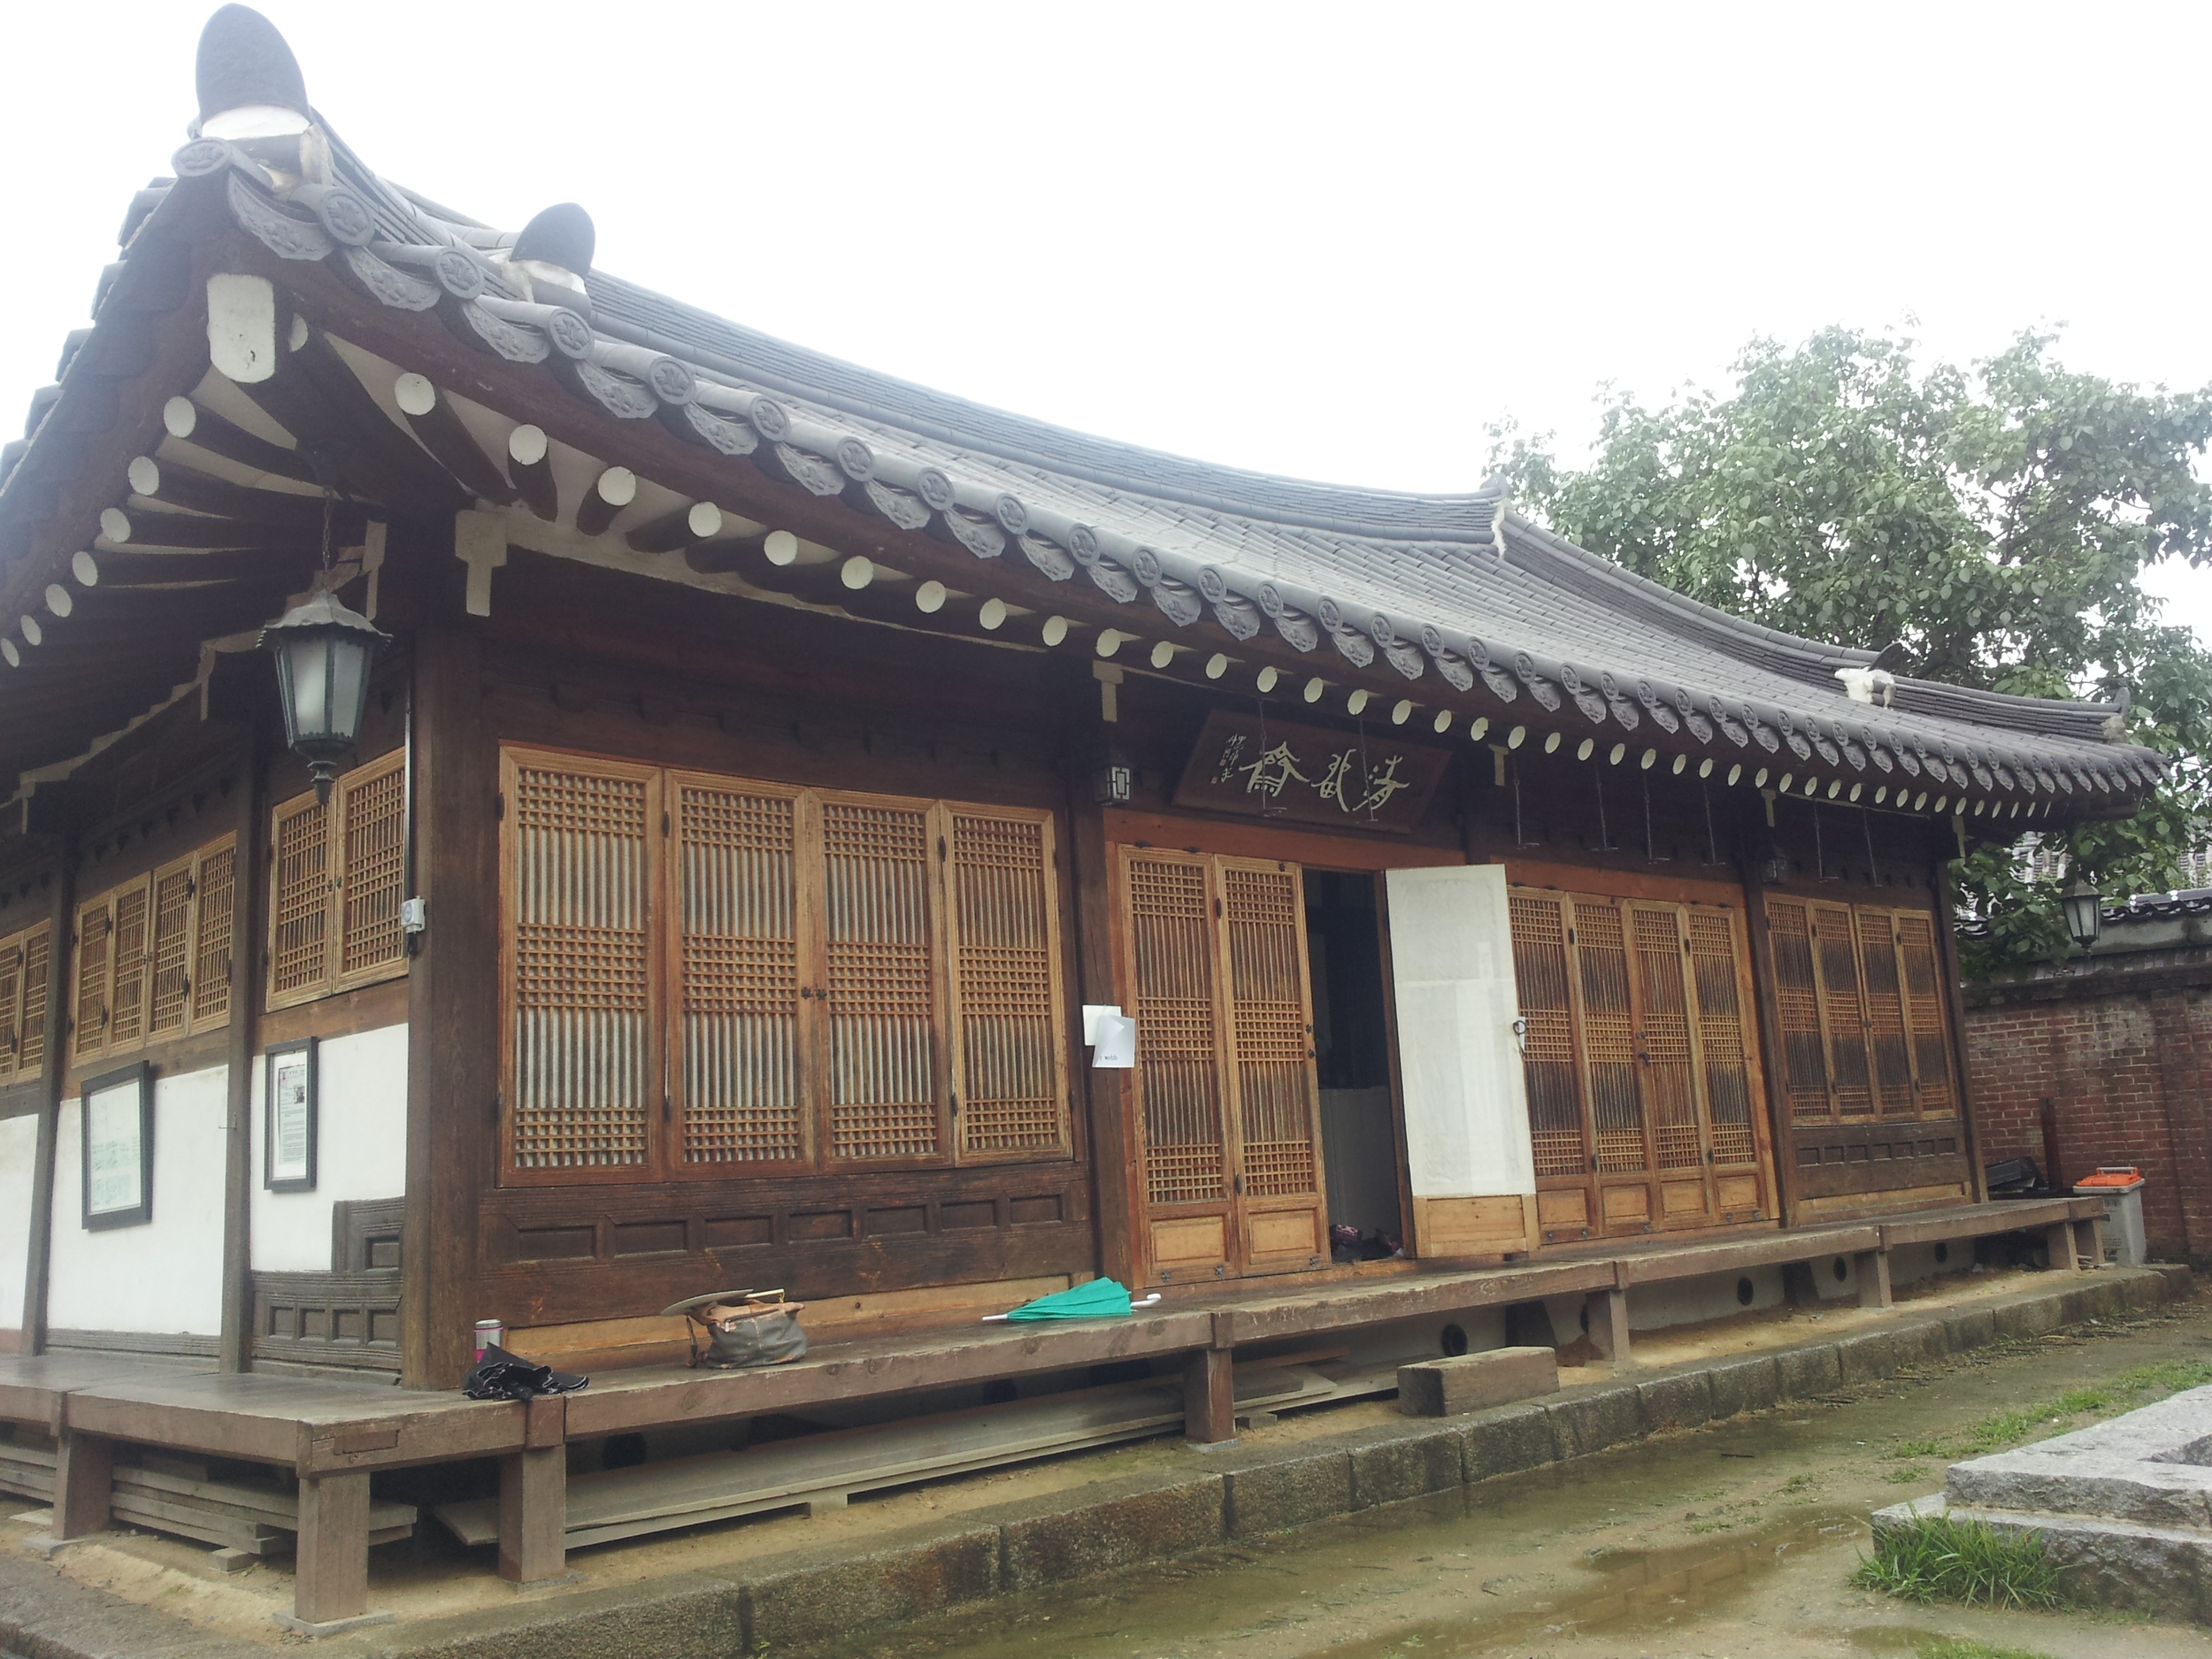 The Hanok I stayed in.